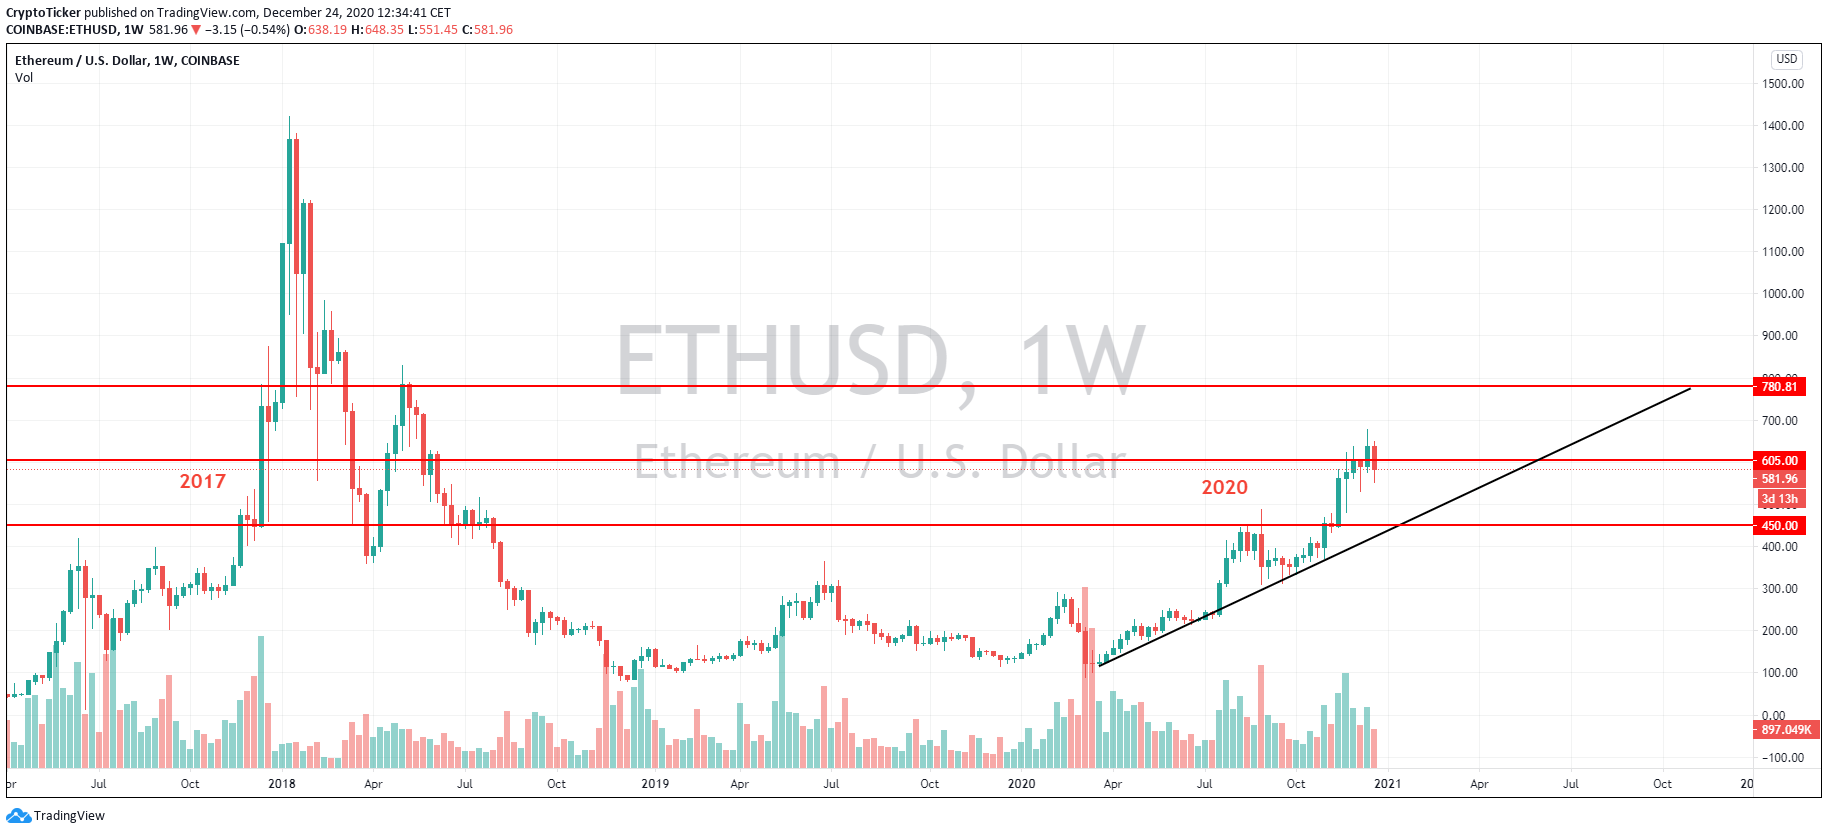 ETH/USD 1-Week chart, a contrast between 2017 and 2020